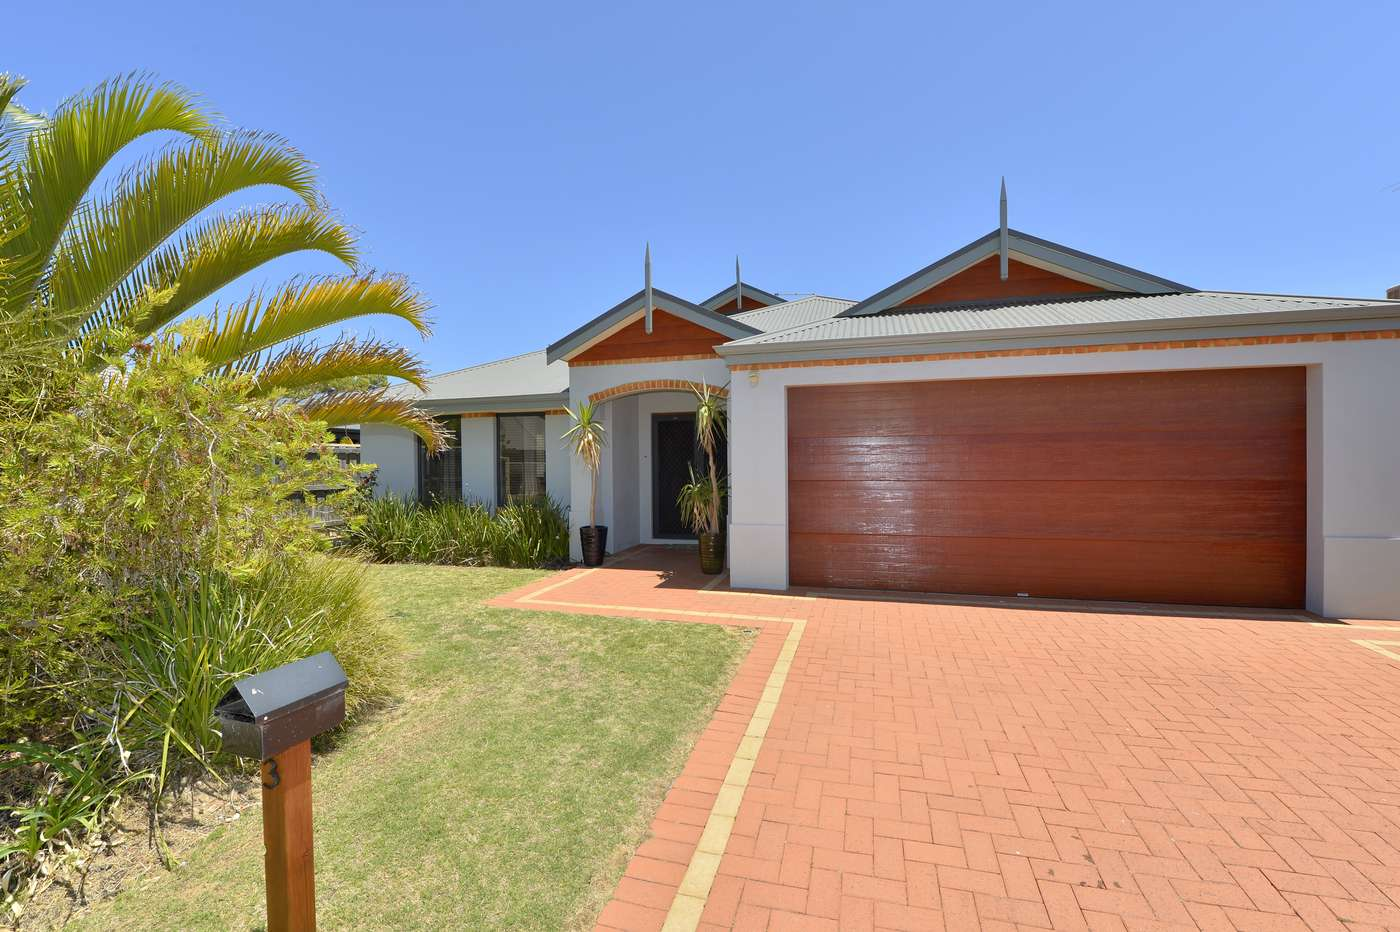 Main view of Homely house listing, 3 Honeymyrtle Grange, Halls Head, WA 6210